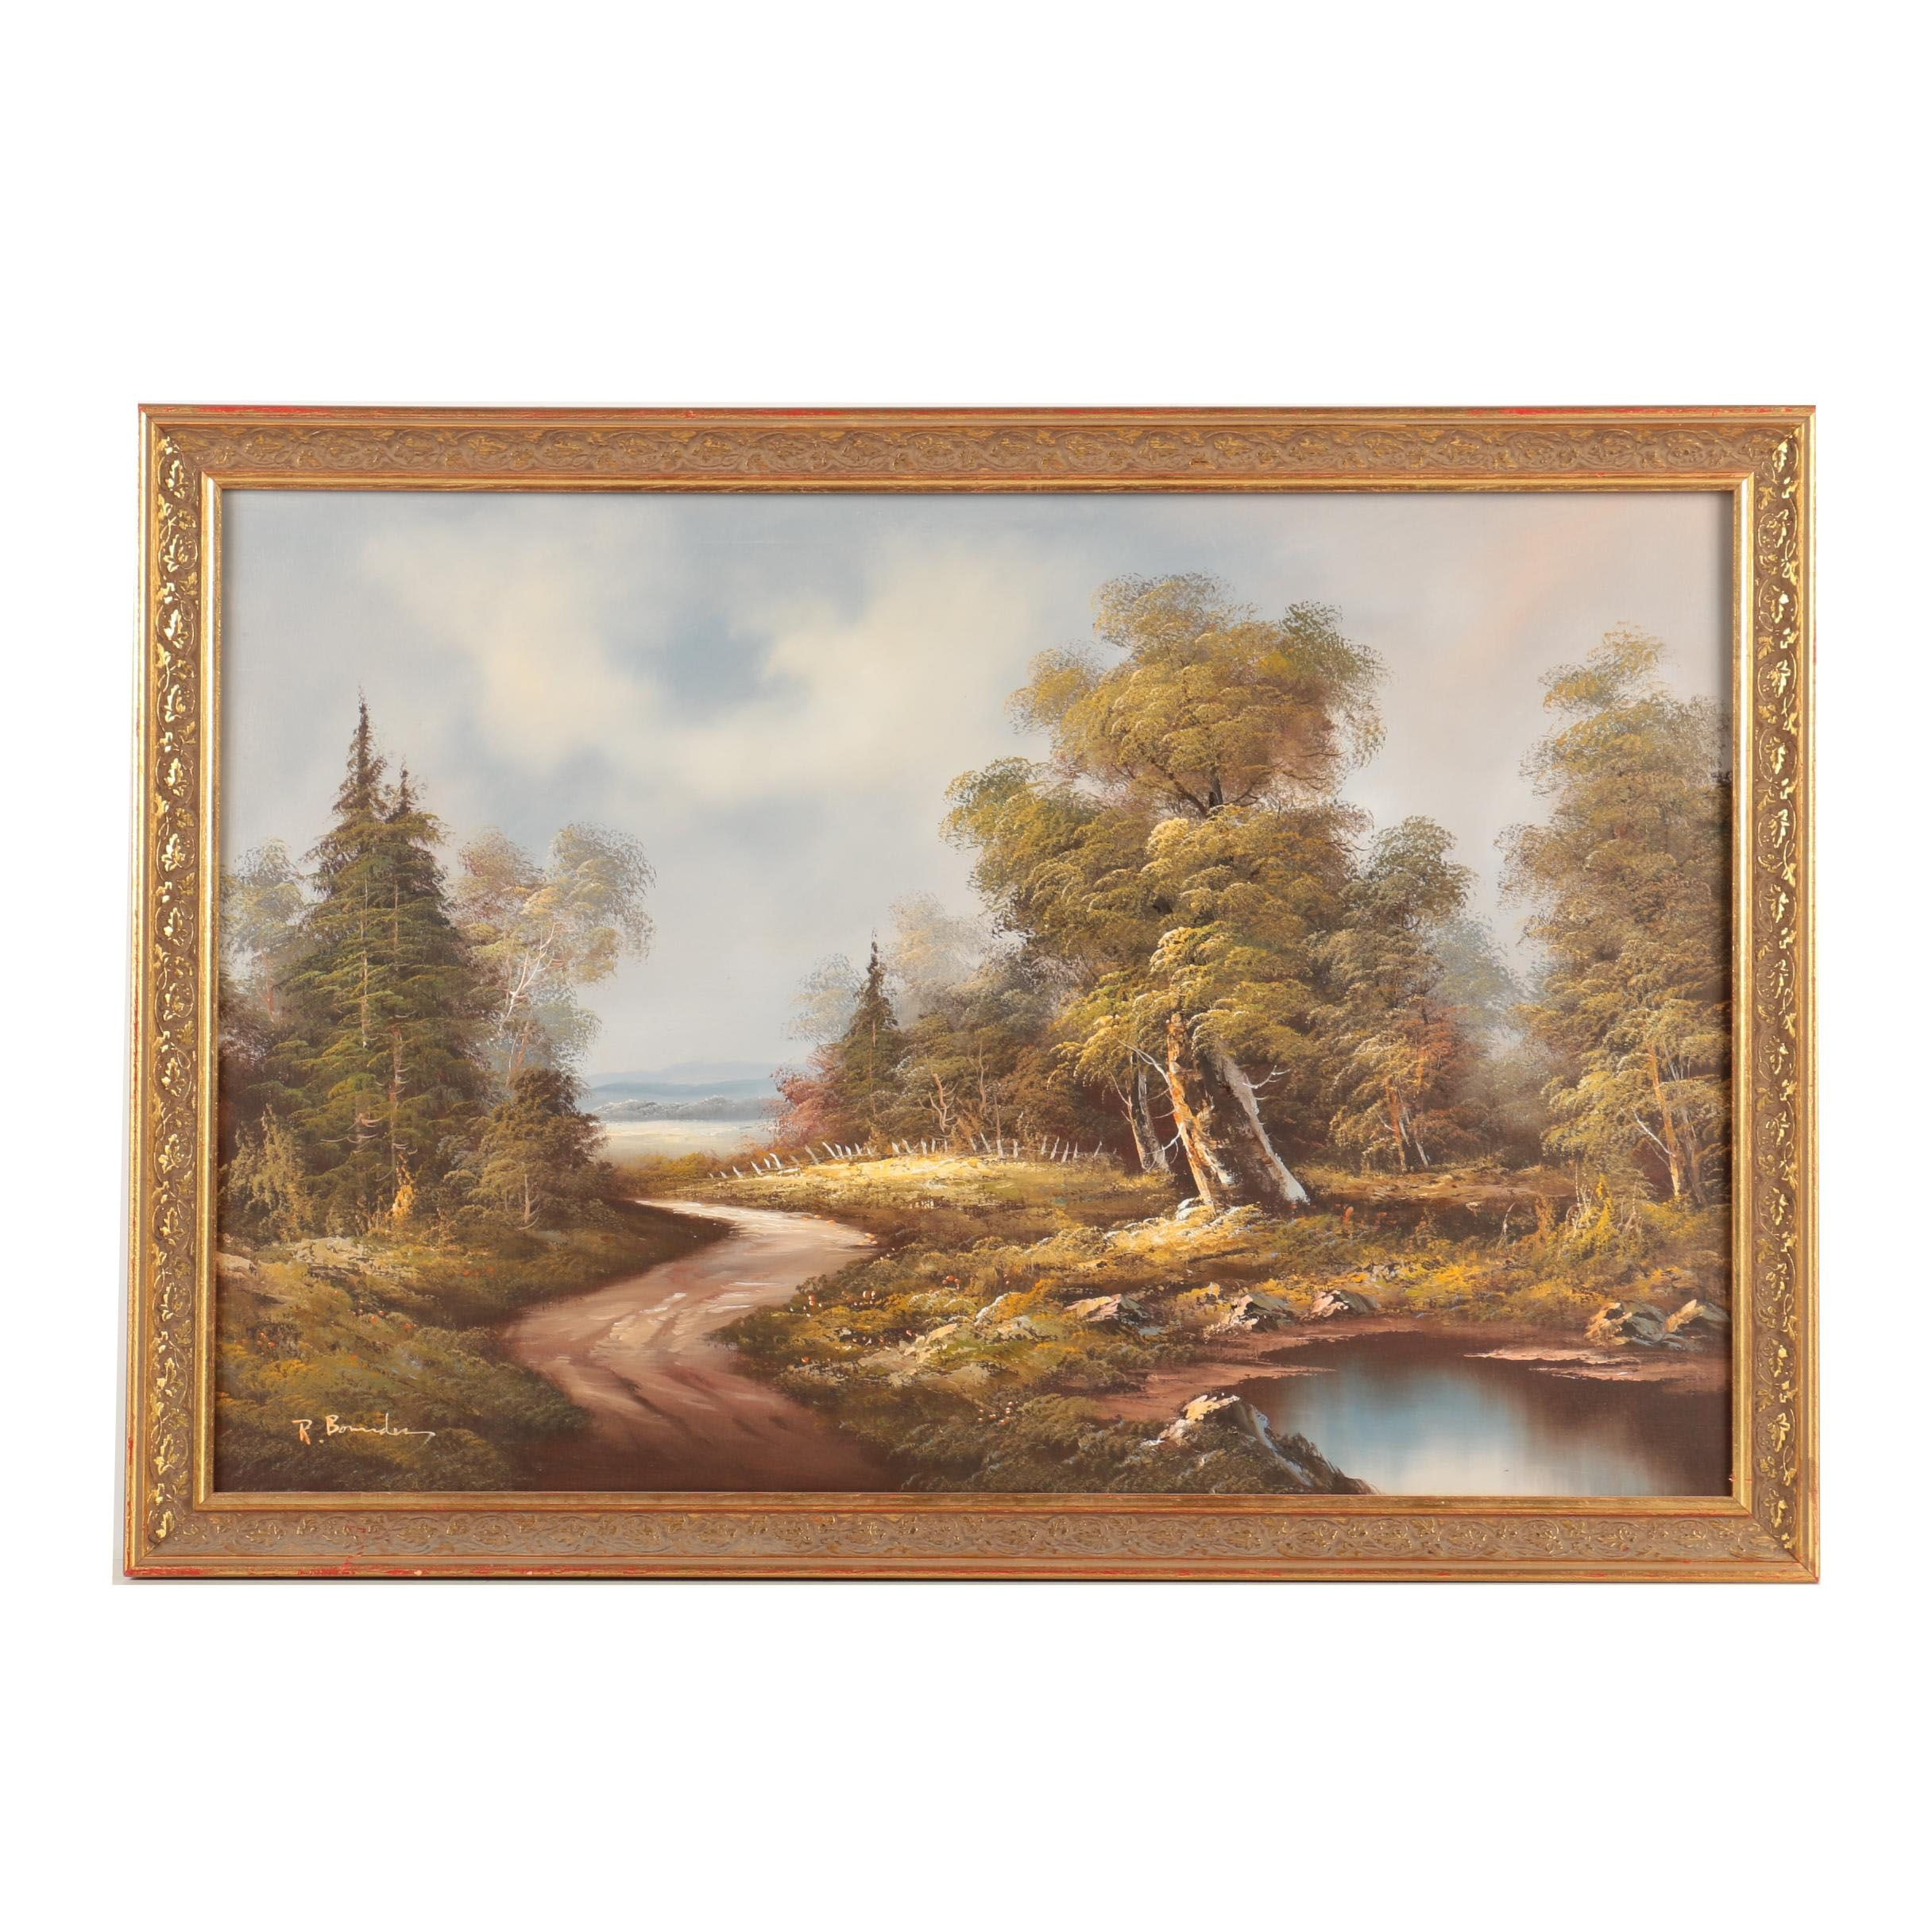 R. Bownder Oil Painting on Canvas of a Wooded Landscape